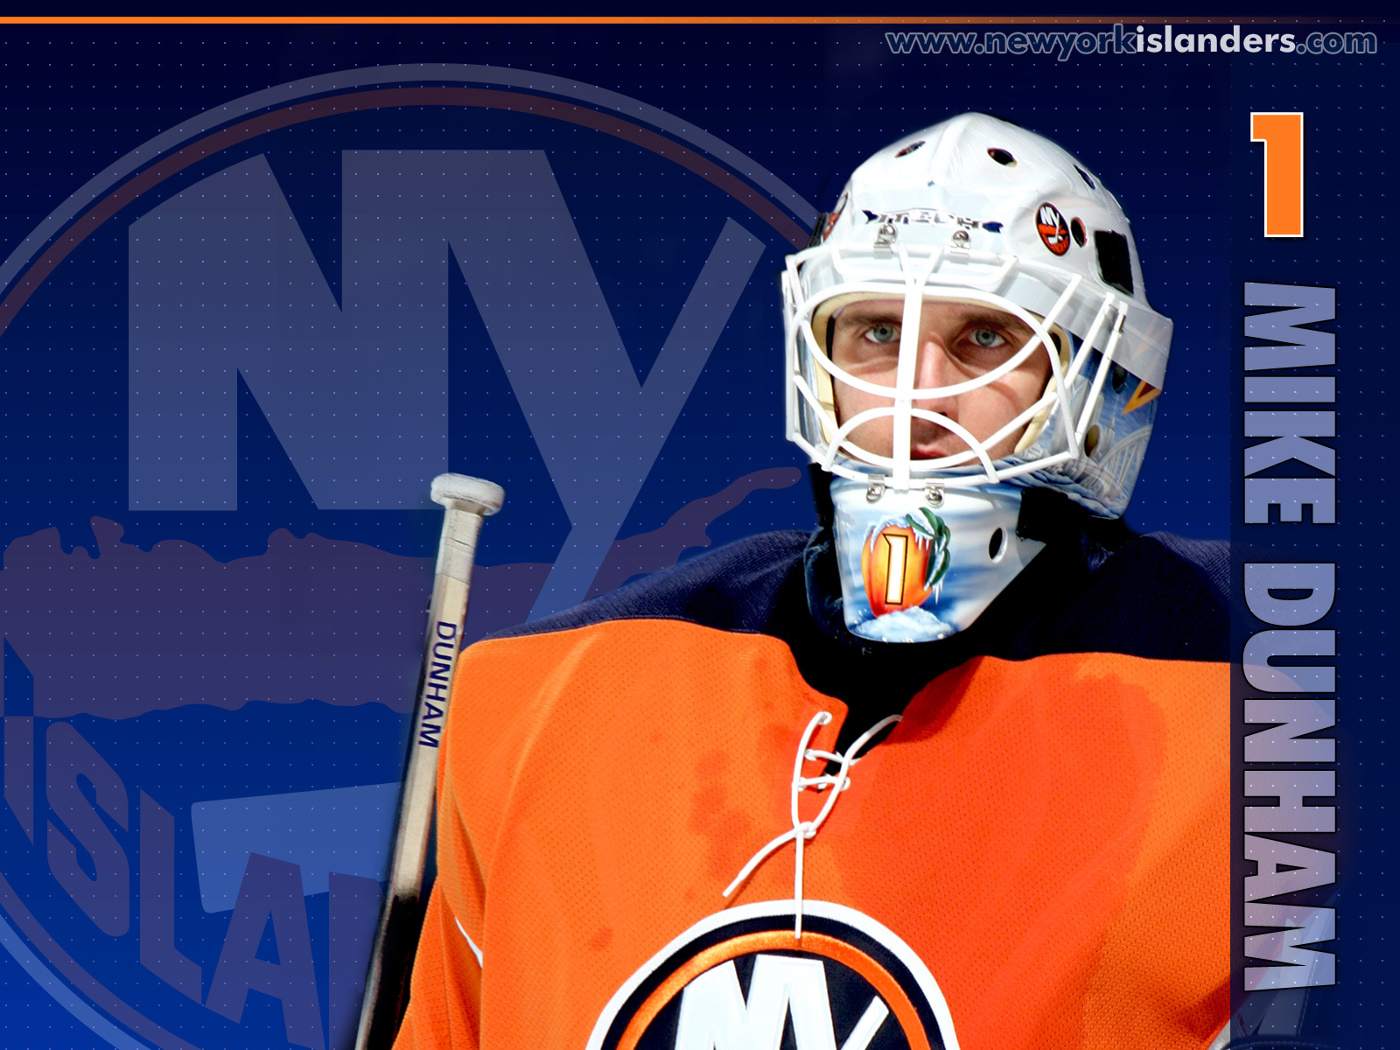 New York Islanders Wallpaper New york islanders desktop 1400x1050